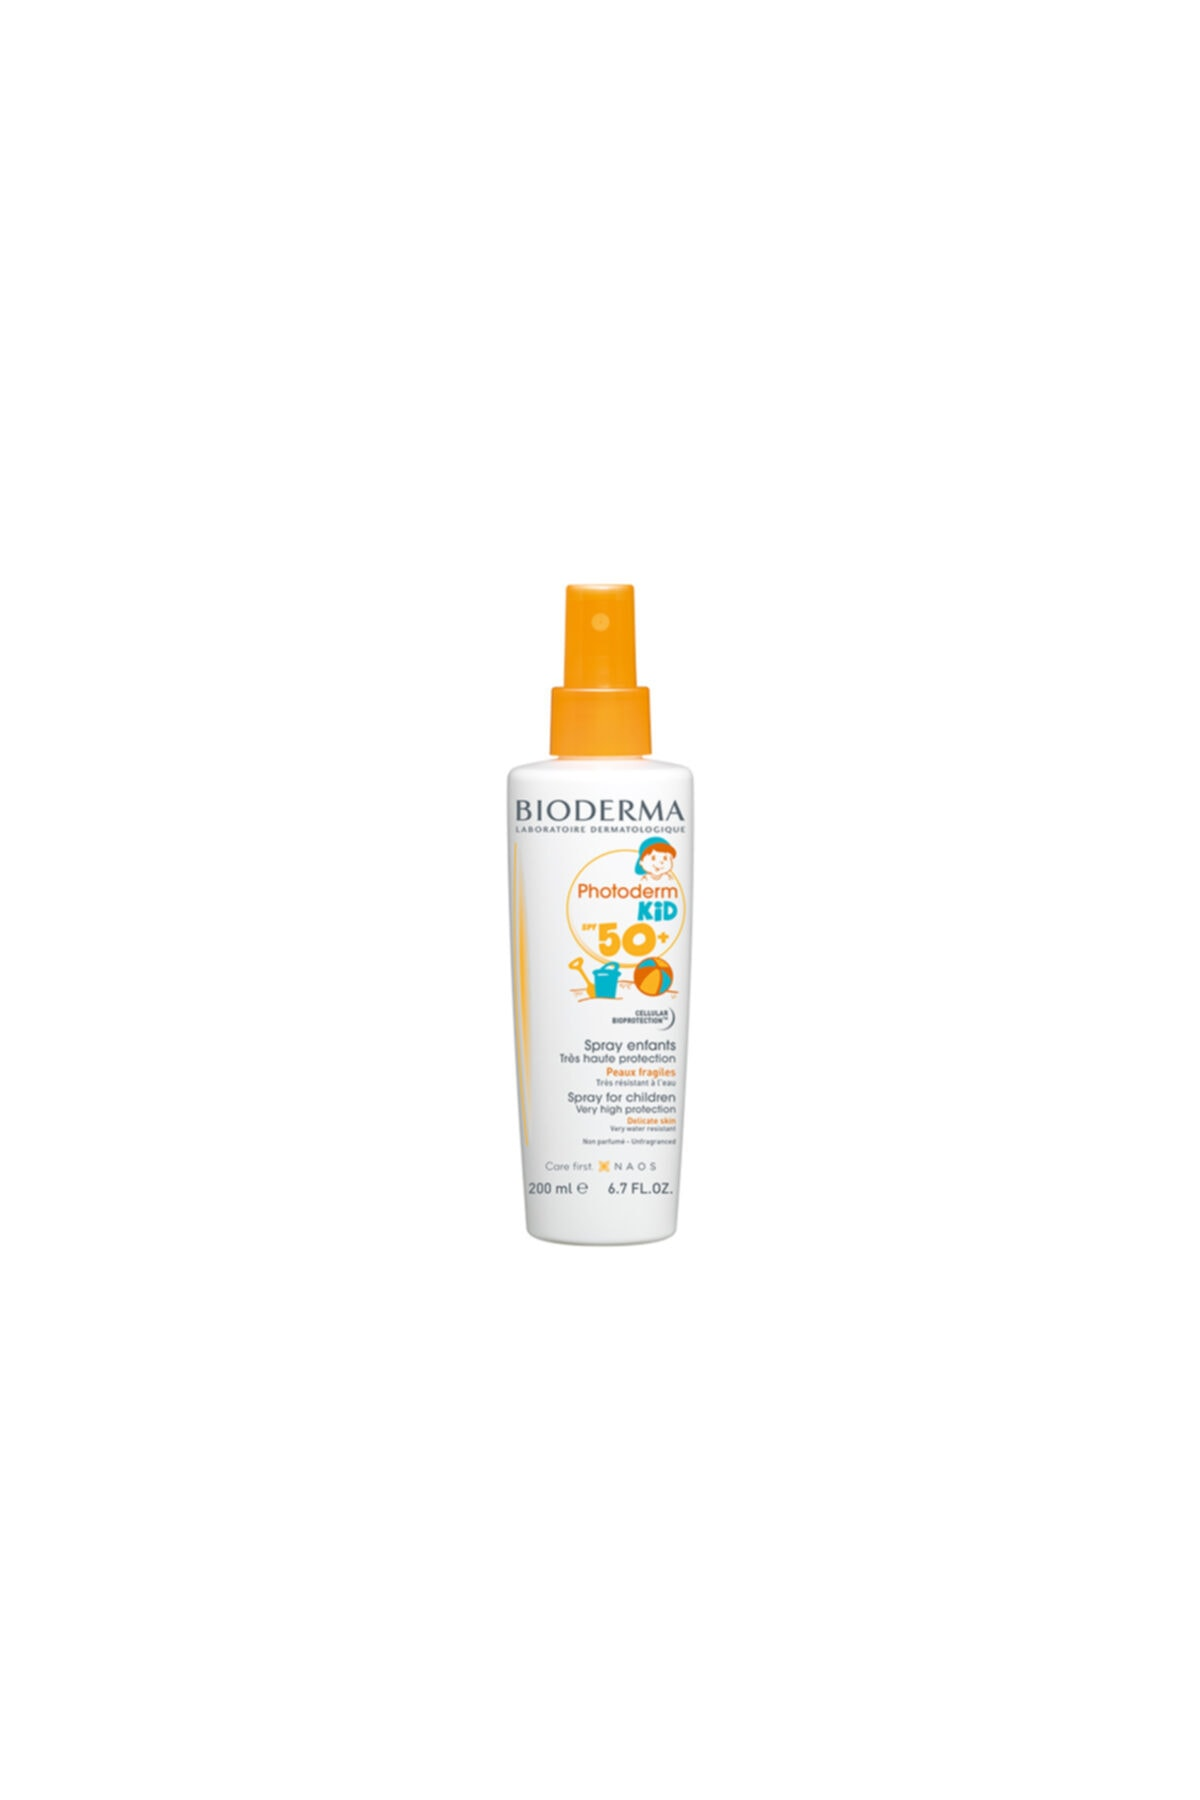 Bioderma Photoderm Kıd Spray Spf 50+ 200 ml 1